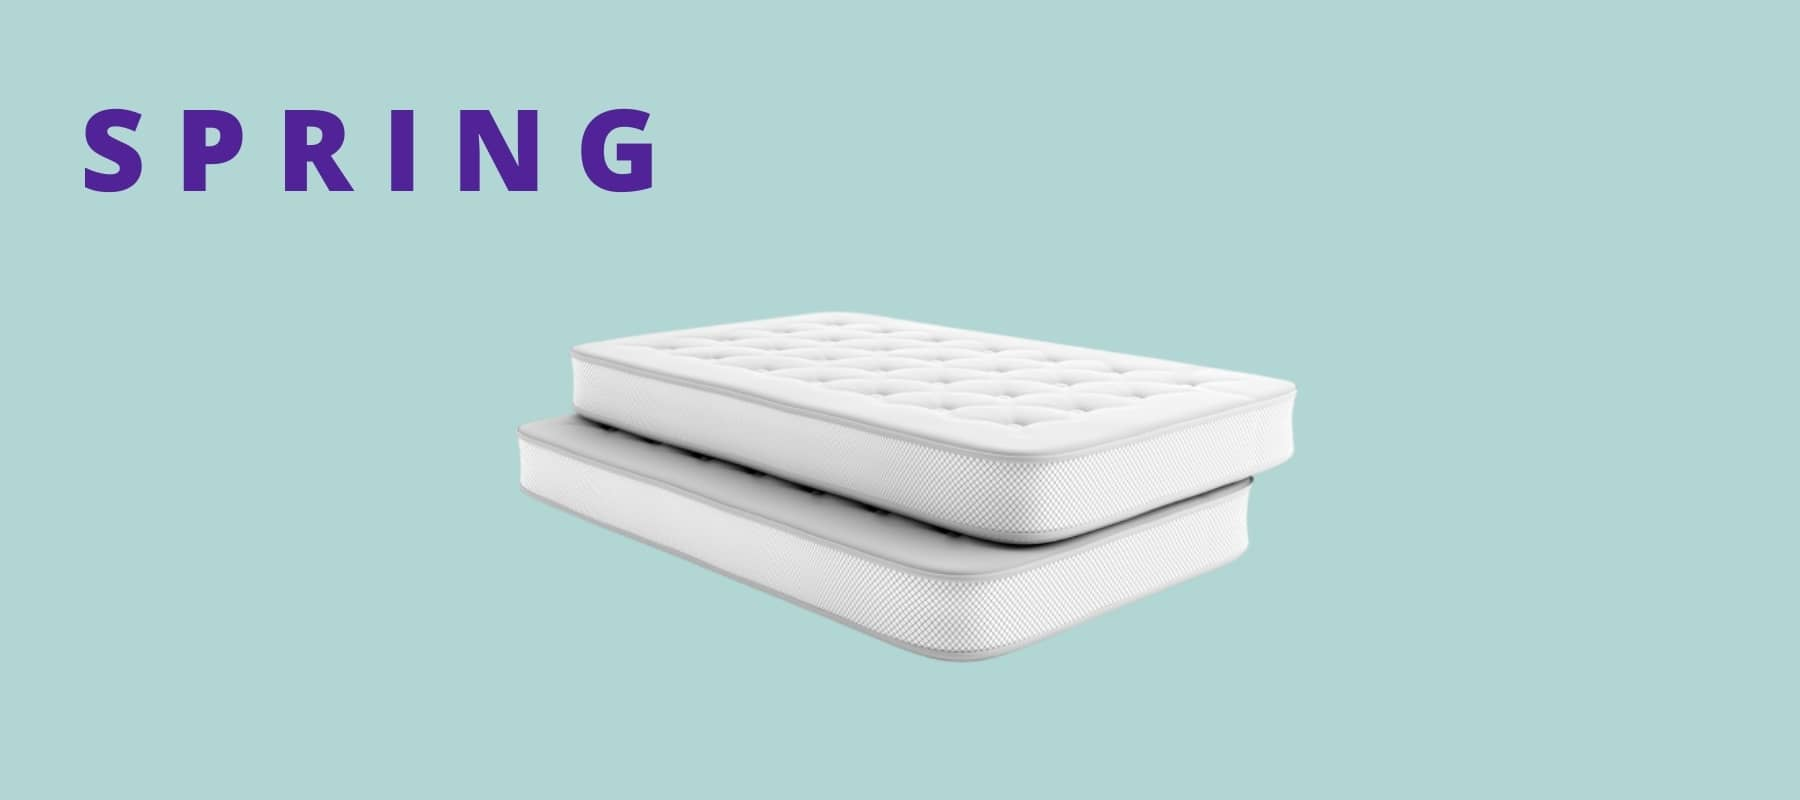 Spring mattresses are not necessarily the best option depending on your body.